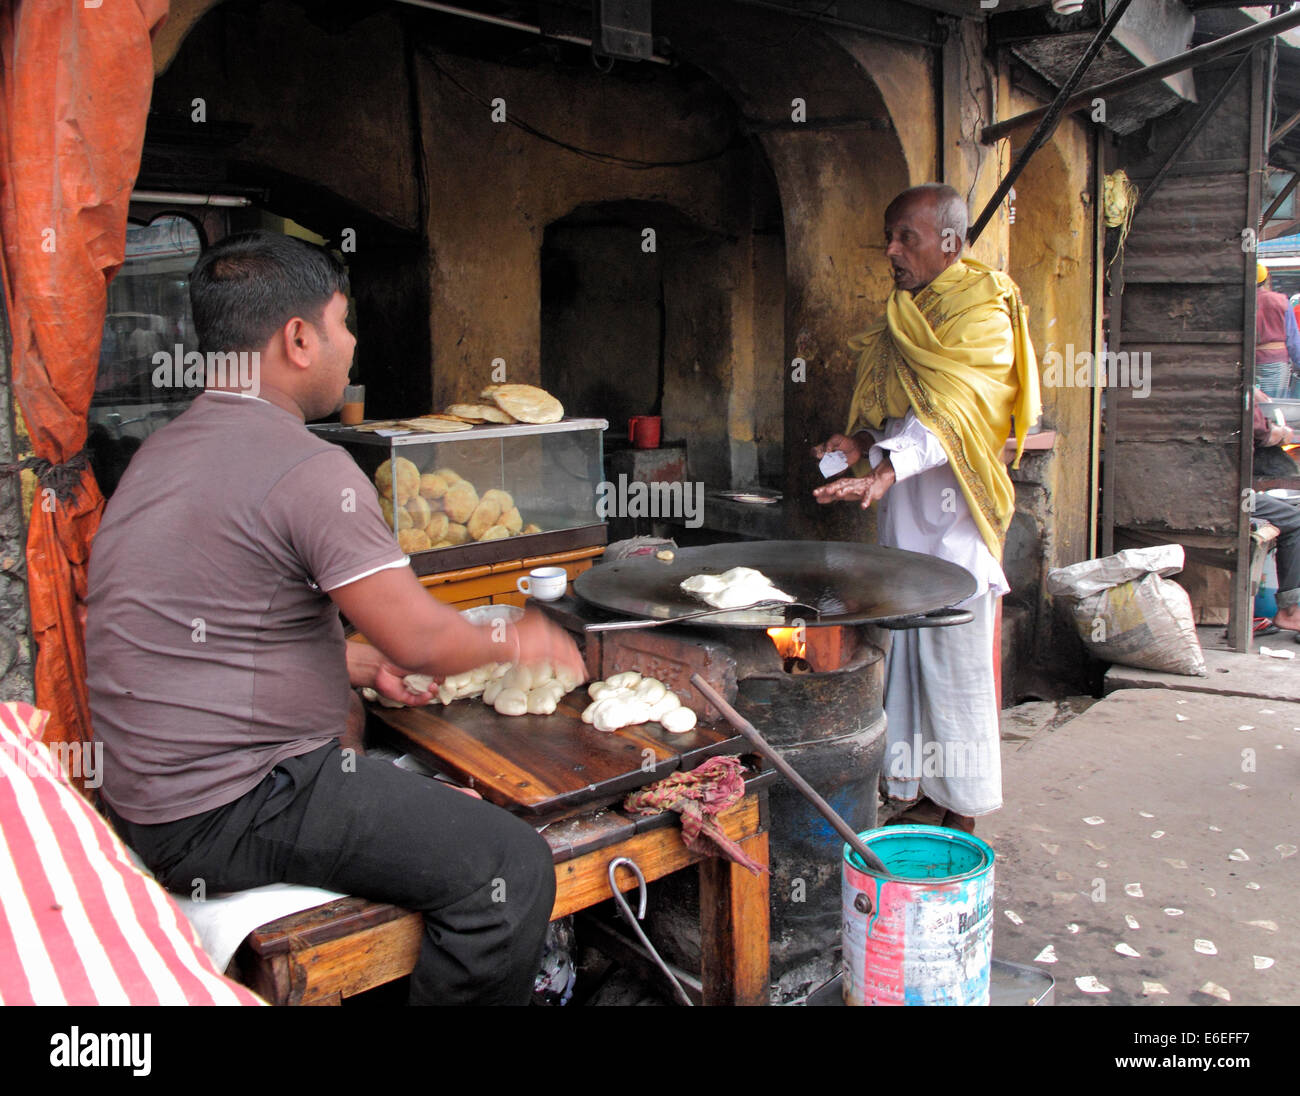 Morning in Bangladesh restaurant, man is warming his hands above hot plate. Cooking on fire, chapati bread,food, - Stock Image